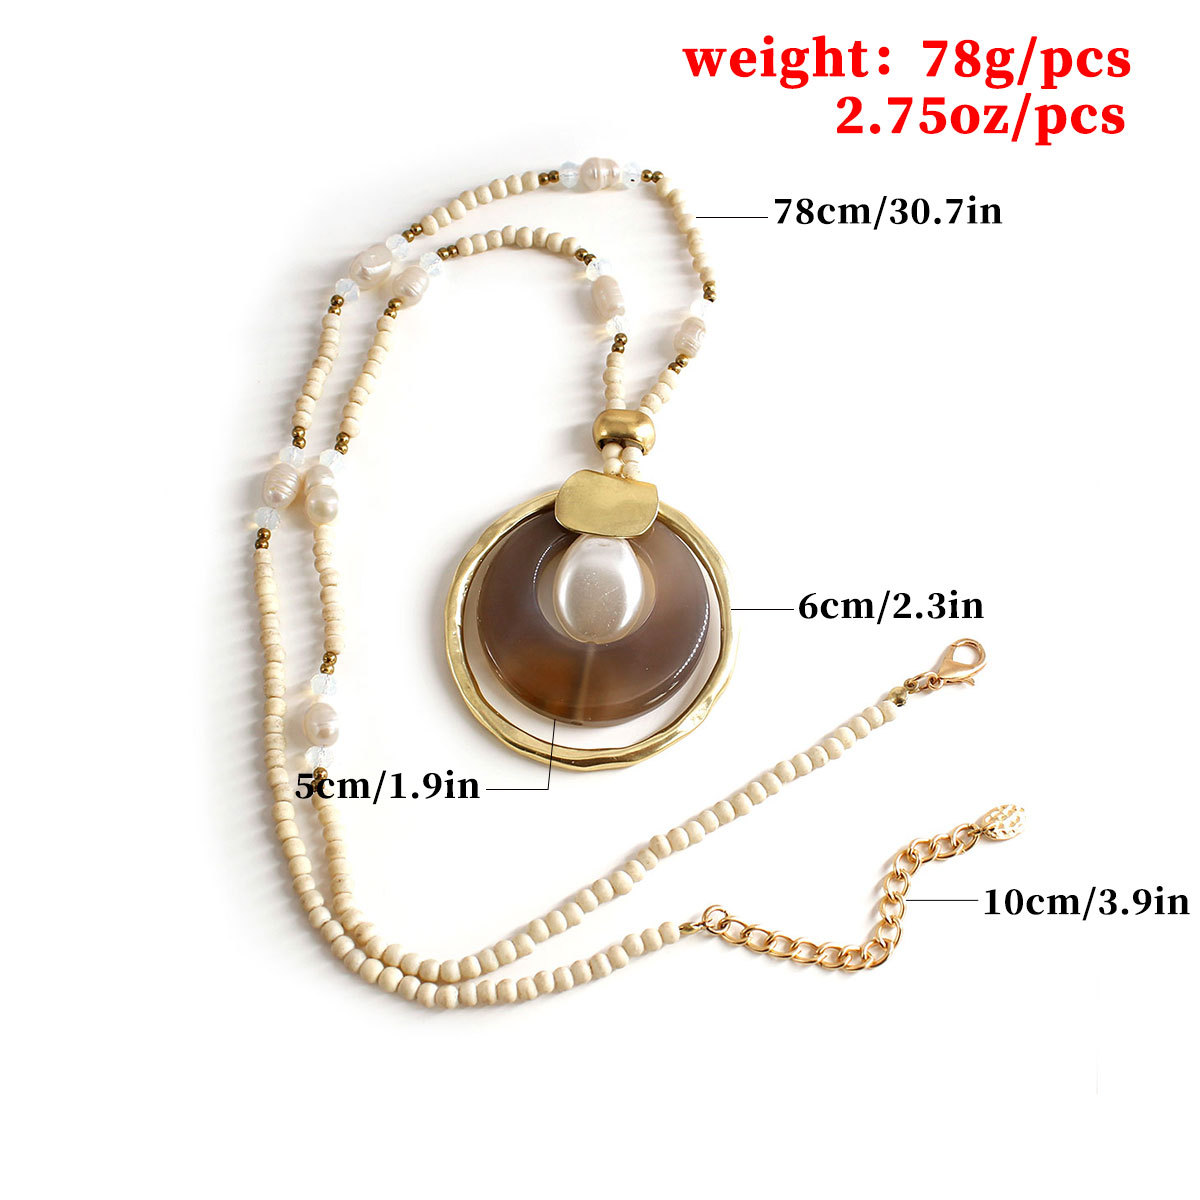 Fashion Jewelry Beads Pearl Round Necklace Pendant Women Exaggerated Personality Necklace XL663 in Pendant Necklaces from Jewelry Accessories